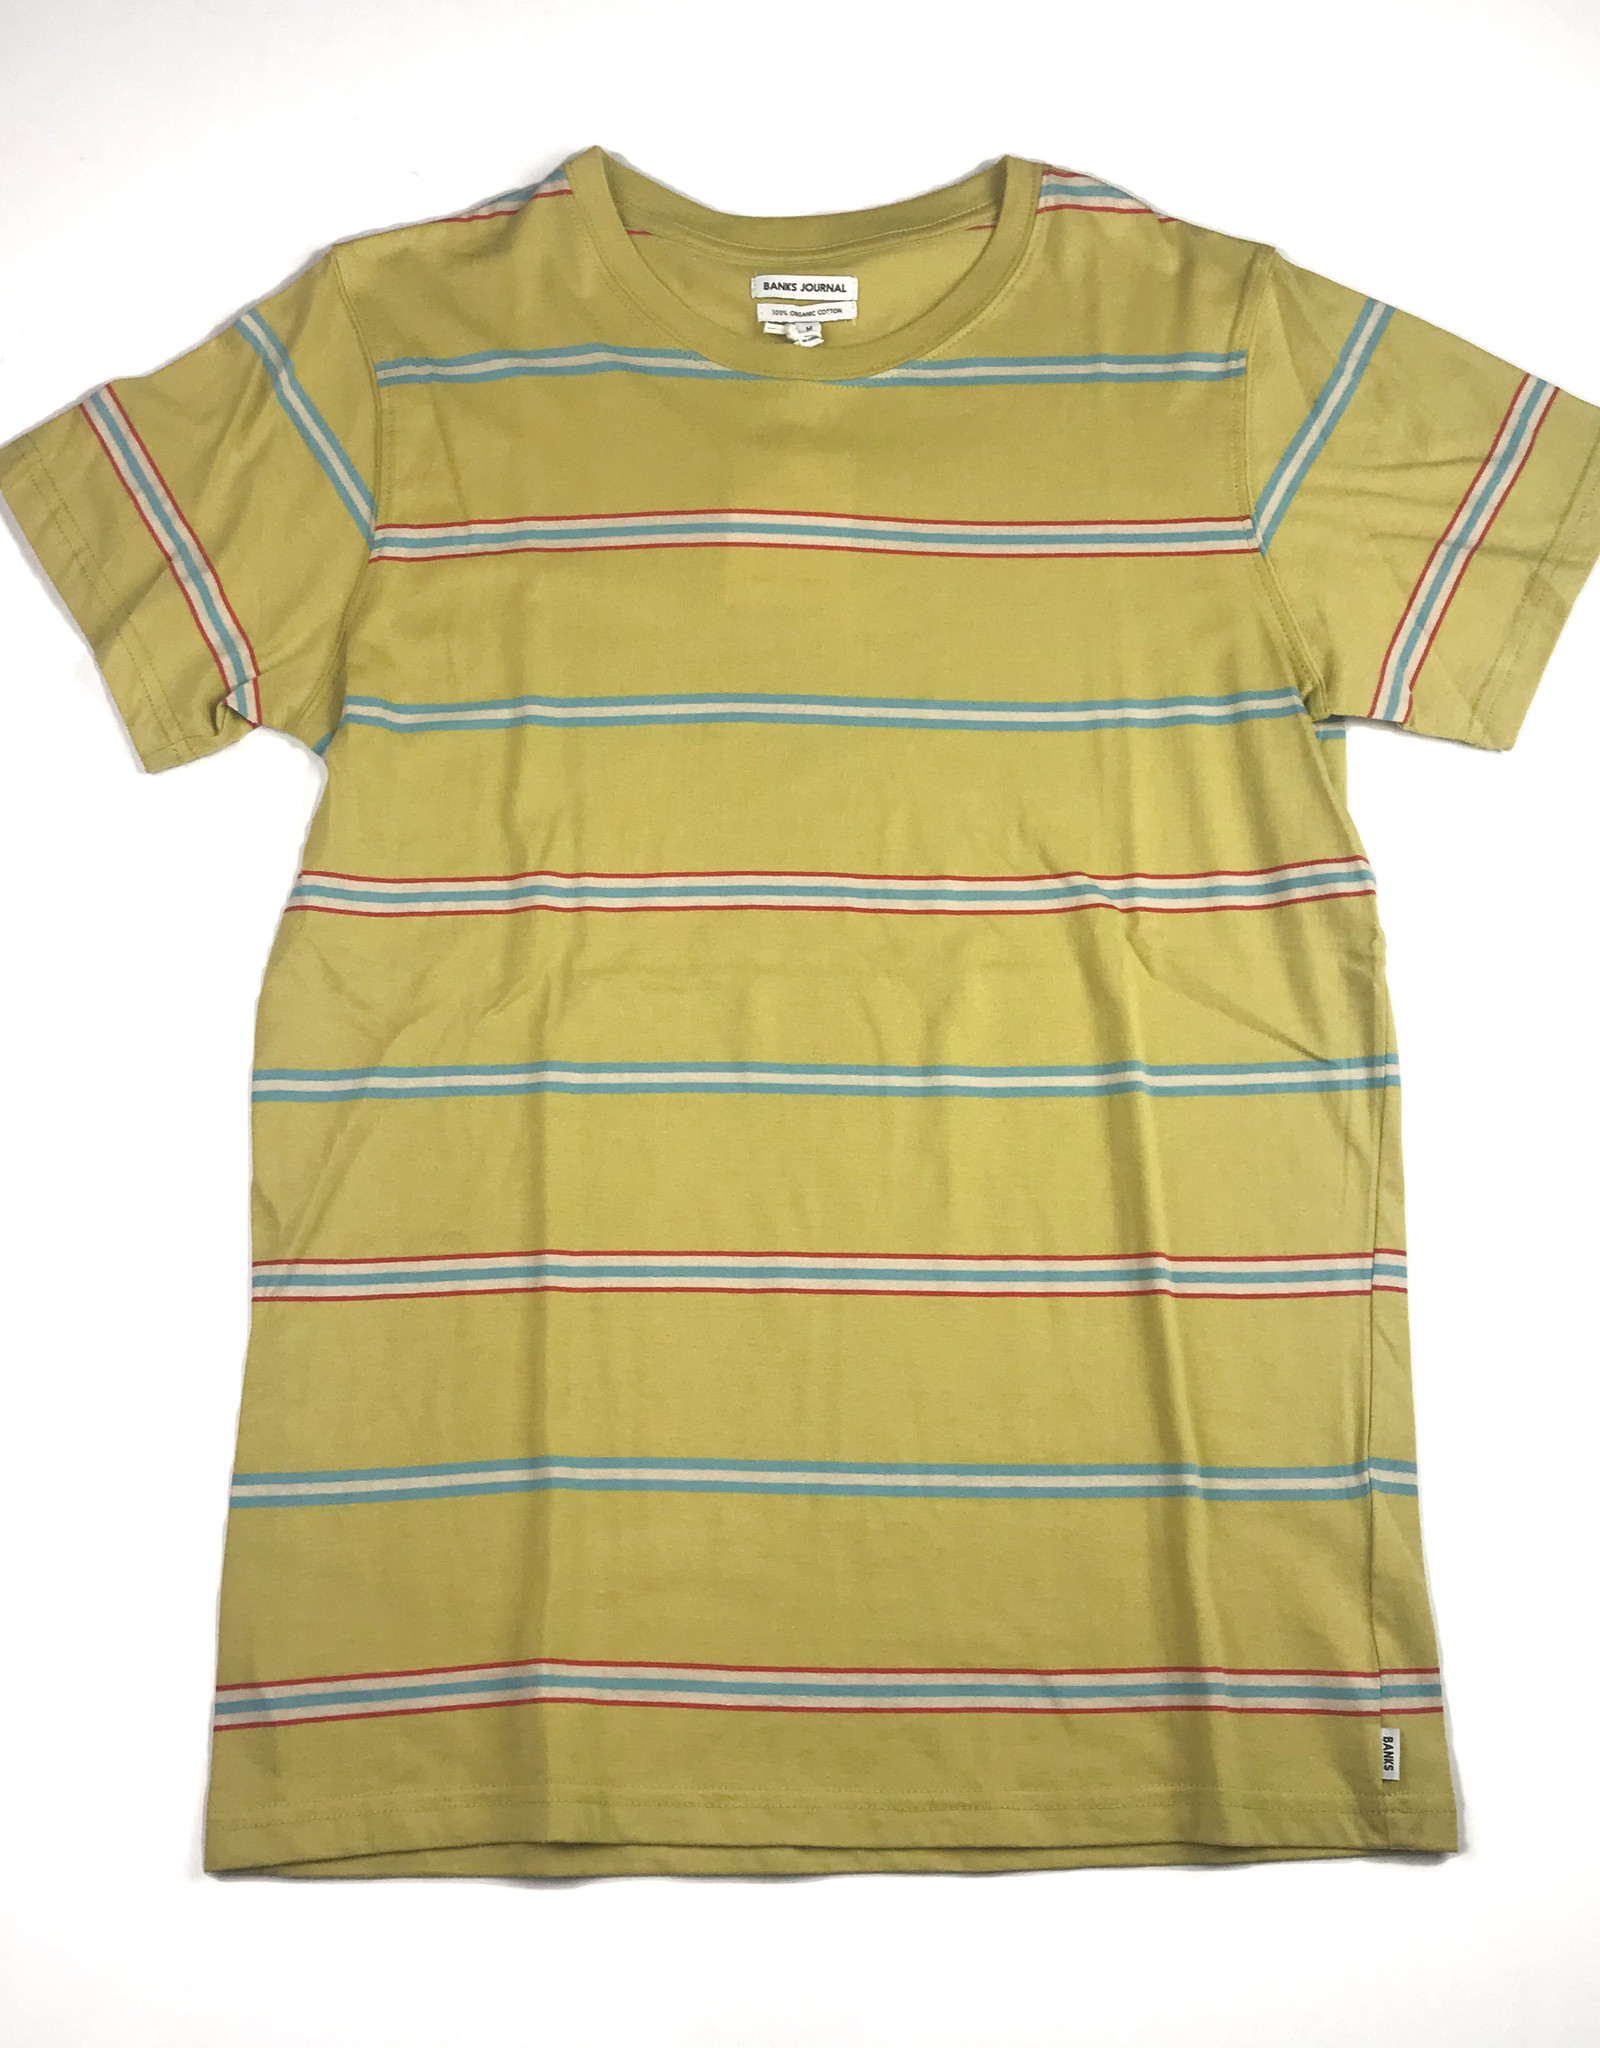 BANKS JOURNAL BANKS CUBA DELUXE TEE - LEMON